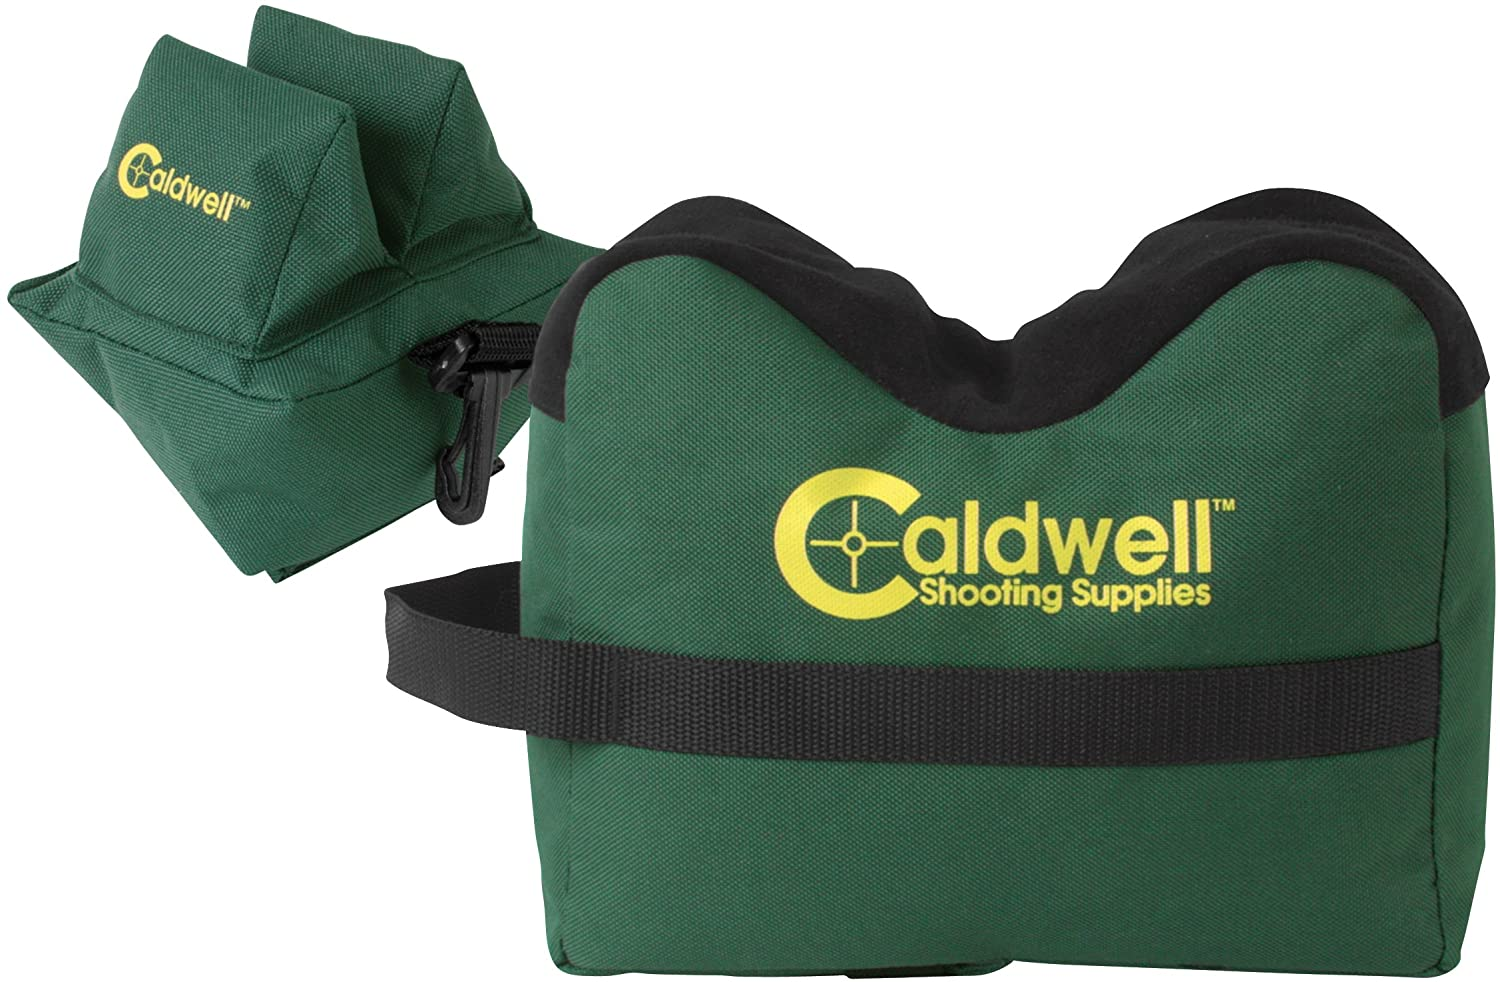 Caldwell DeadShot Boxed Combo Front and Rear Bag with Durable Construction and Water Resistance for Outdoor, Range, Shooting and Hunting